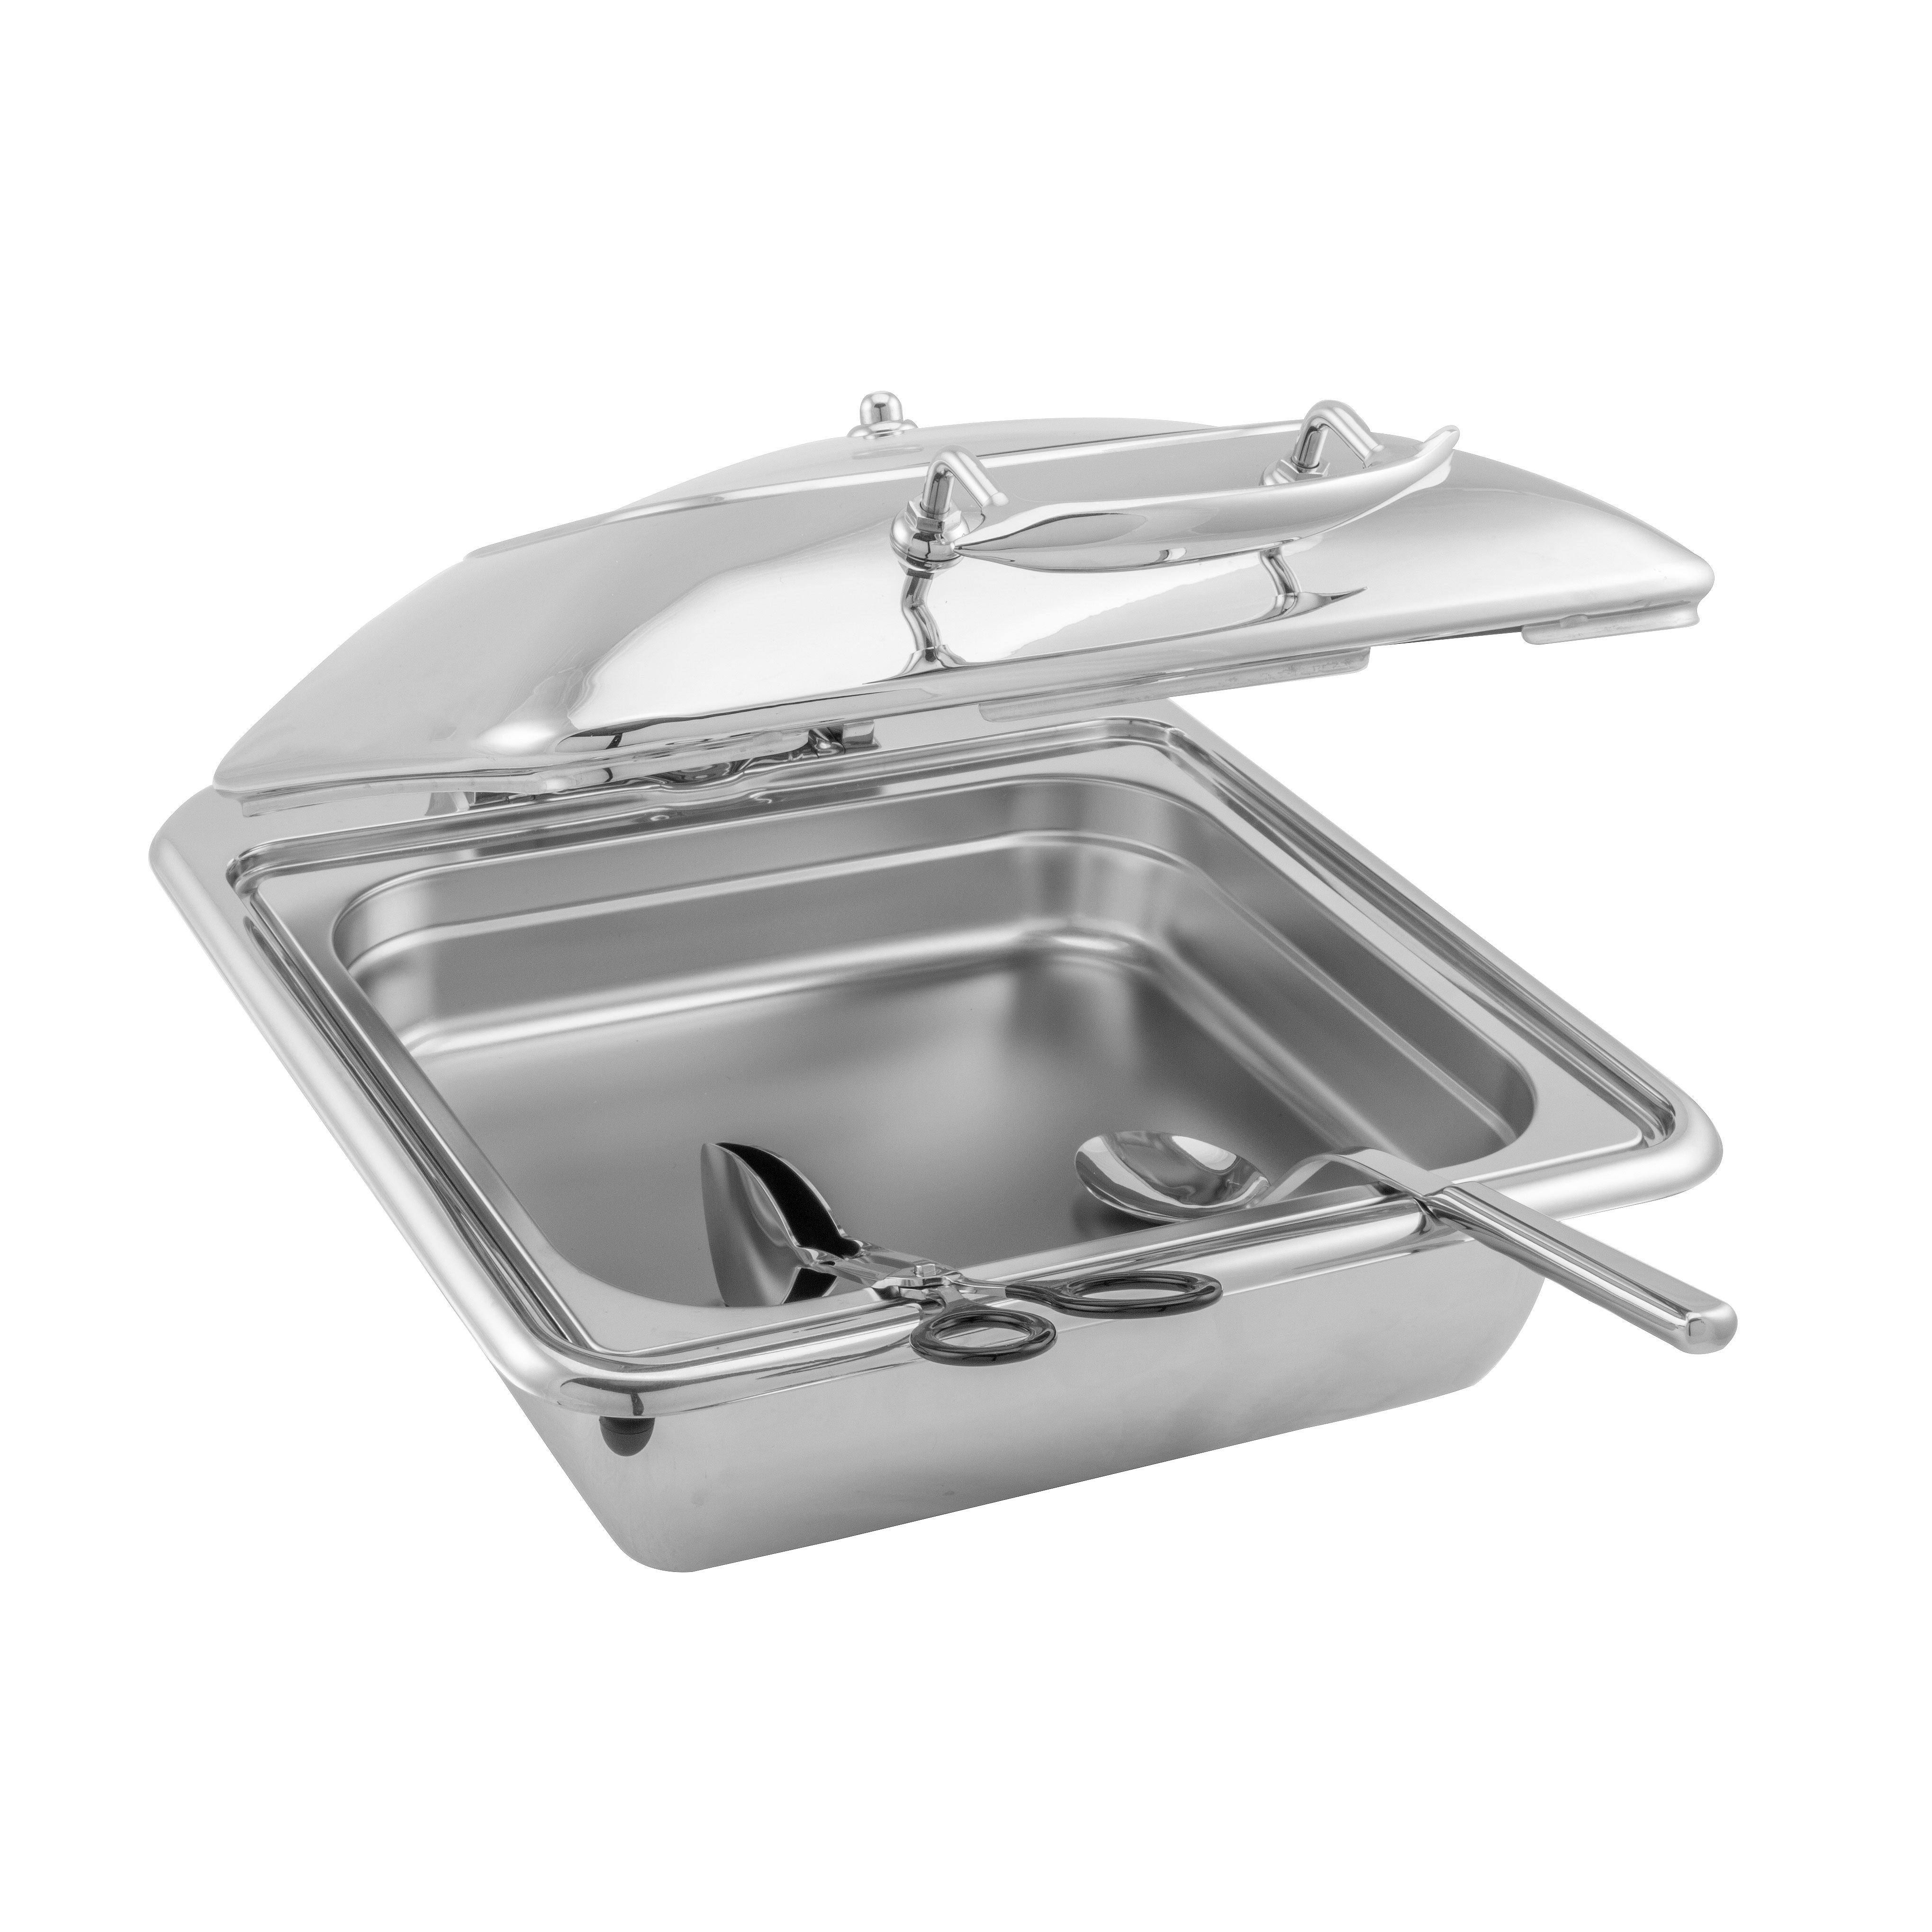 Walco Stainless WI55BODY chafing dish